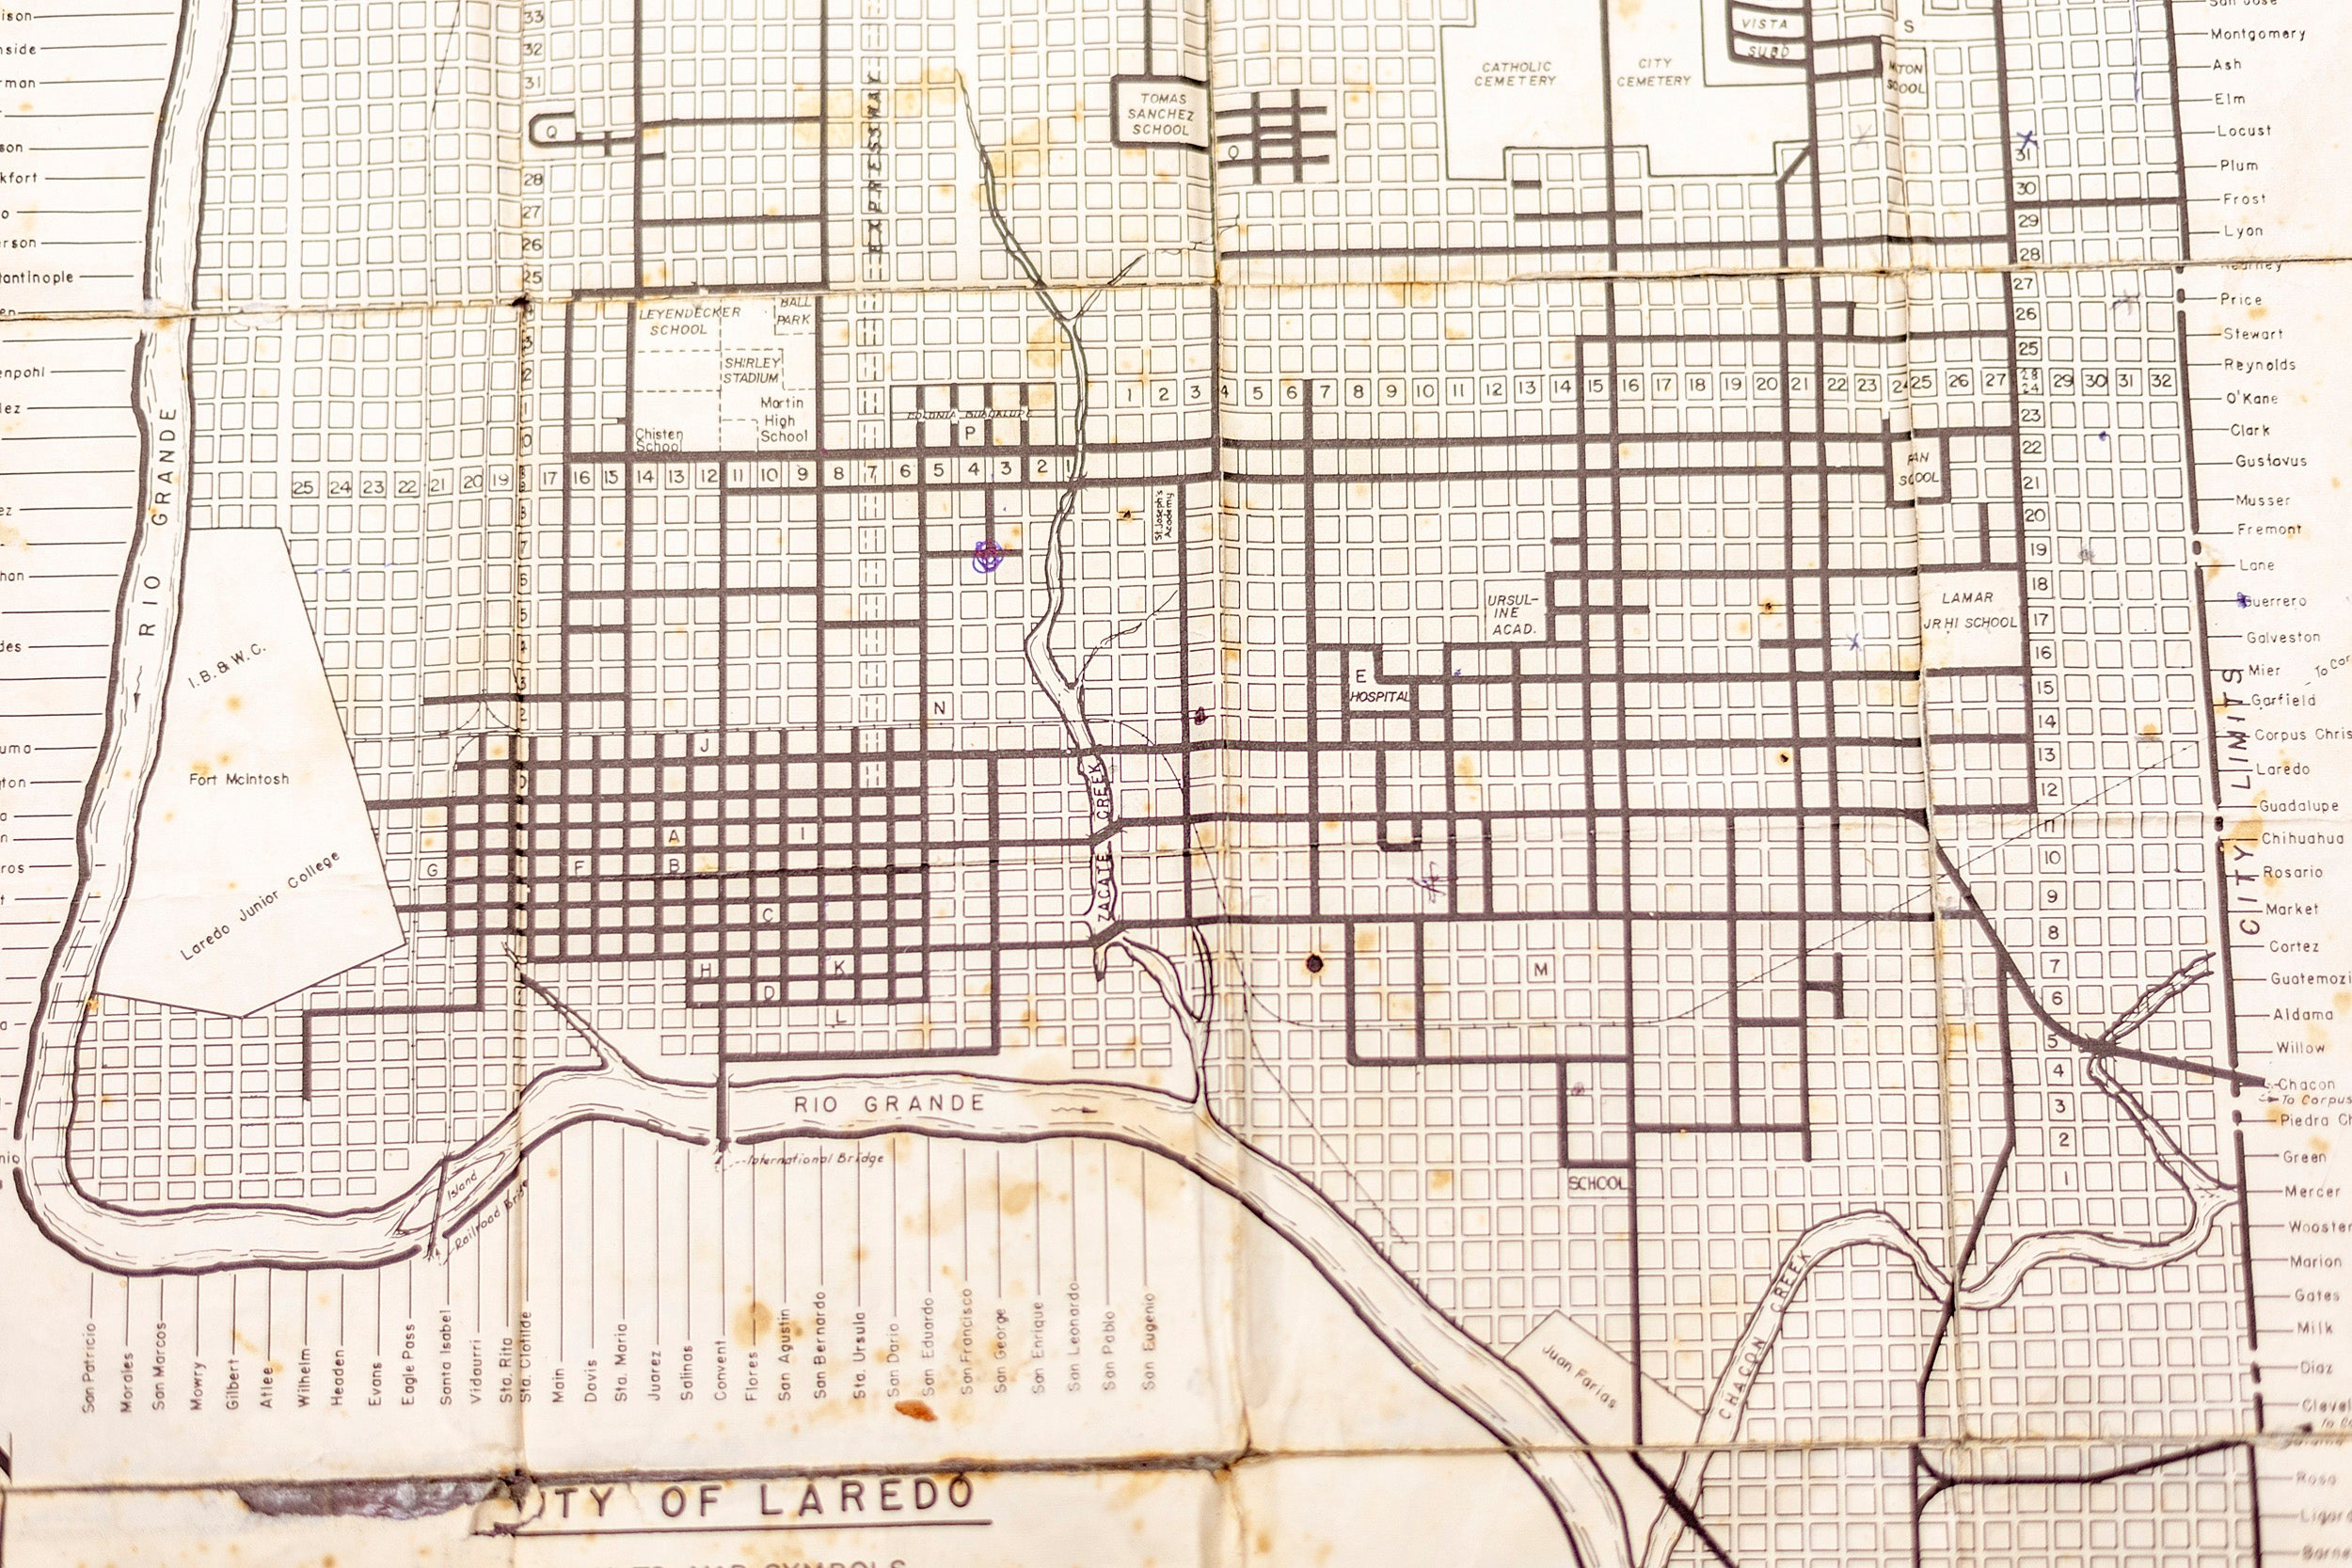 Archival map of Laredo, Texas.